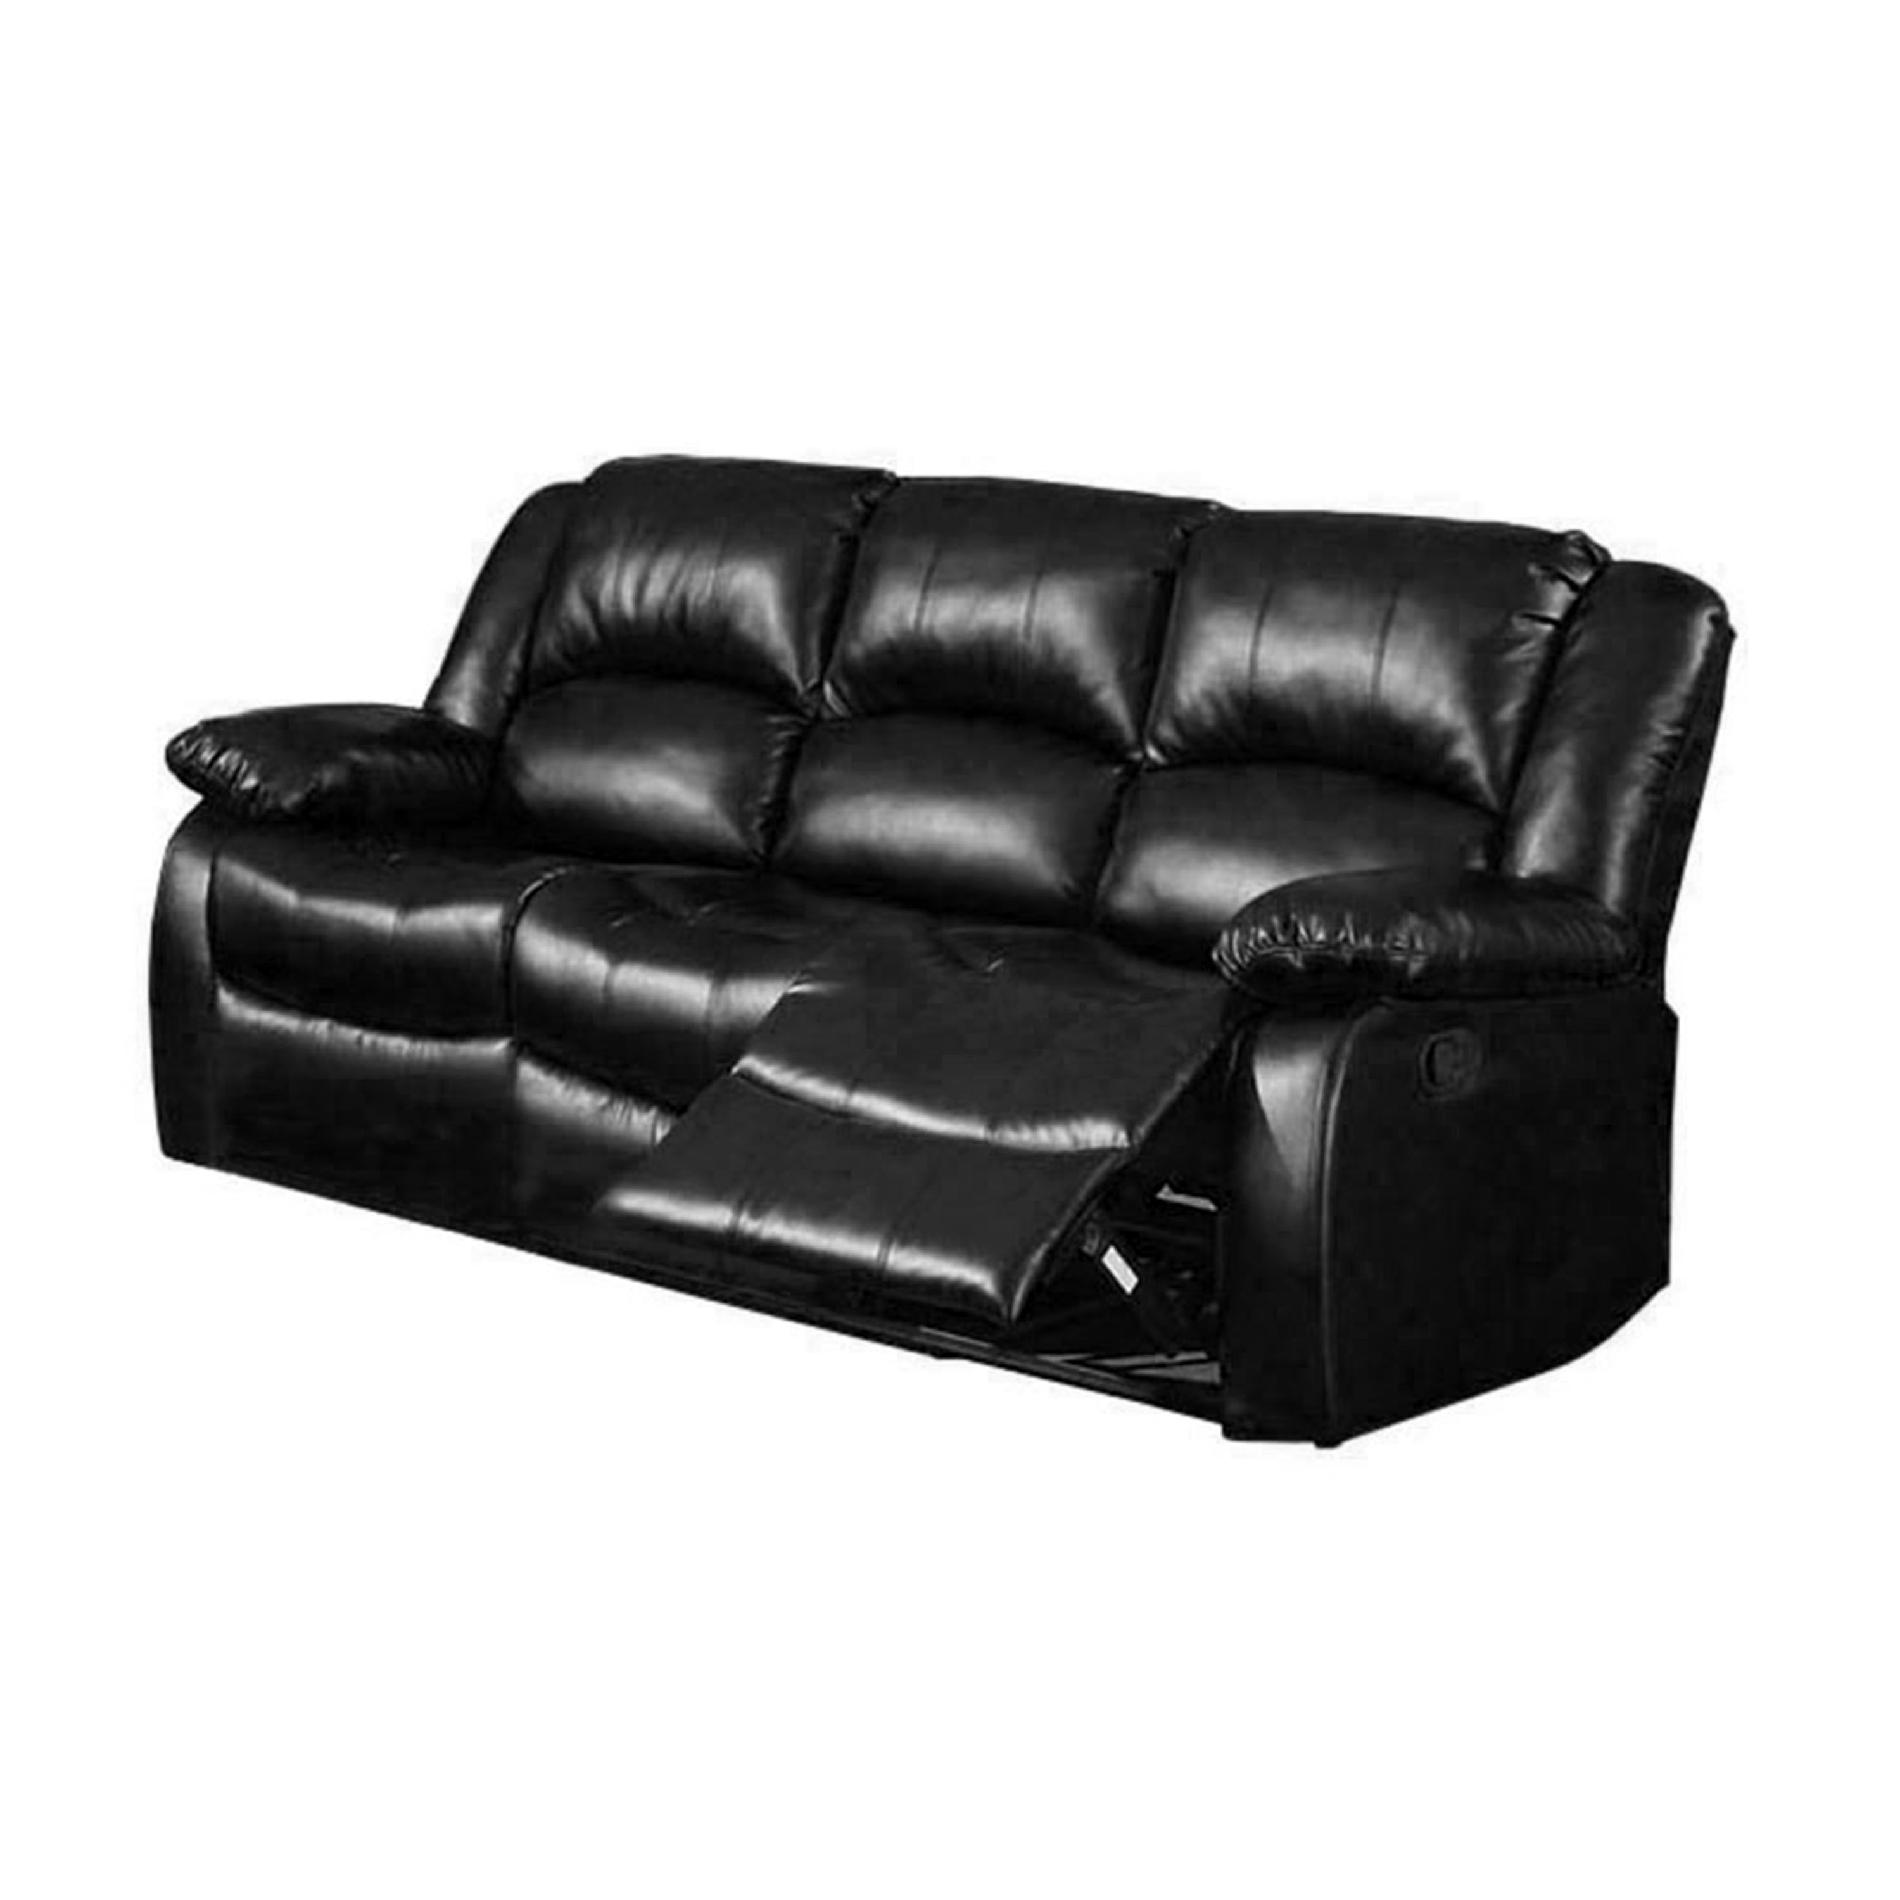 angus bonded leather reclining sofa galaxy sectional venetian worldwide cm6556 s winslow